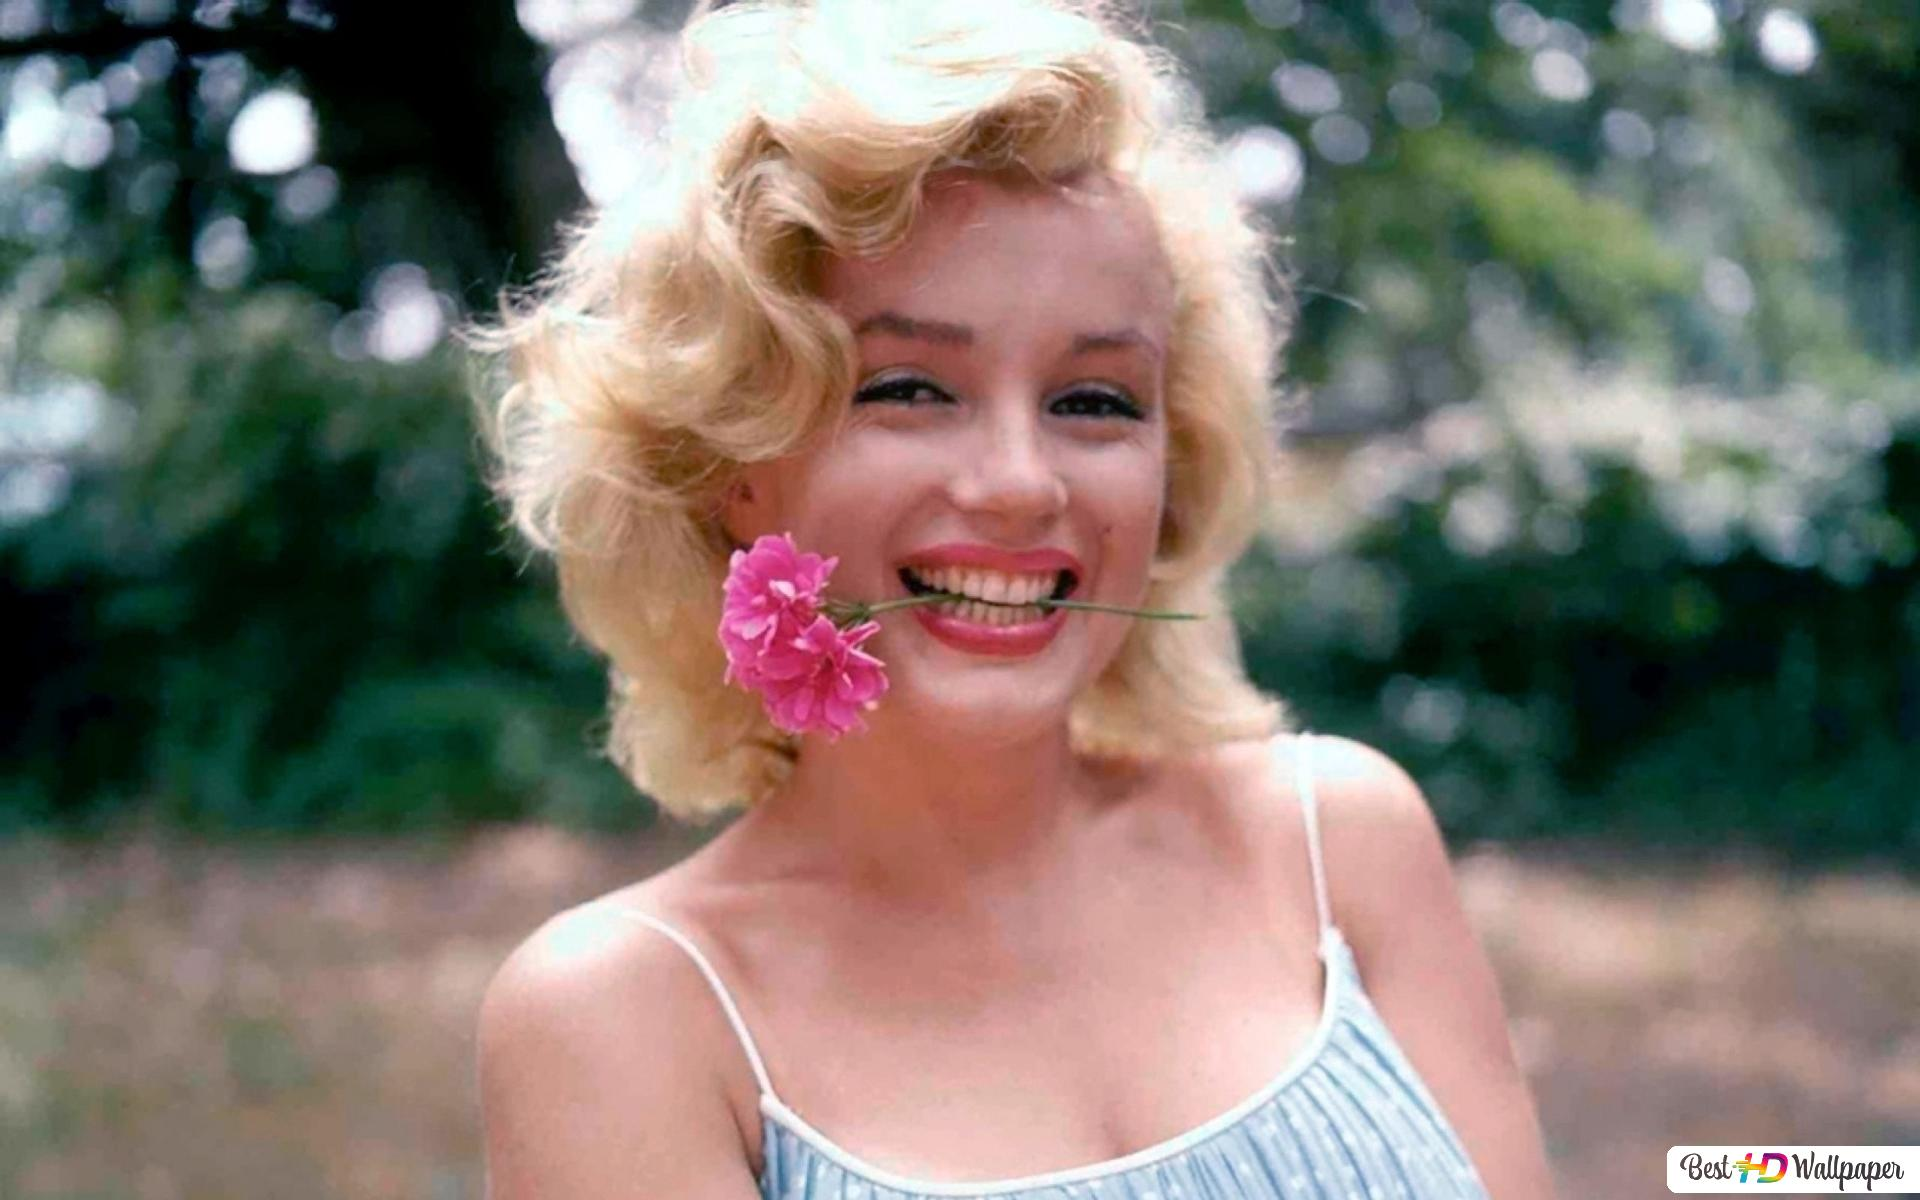 Beautiful Actress Marilyn Monroe Biting A Pink Flower Hd Wallpaper